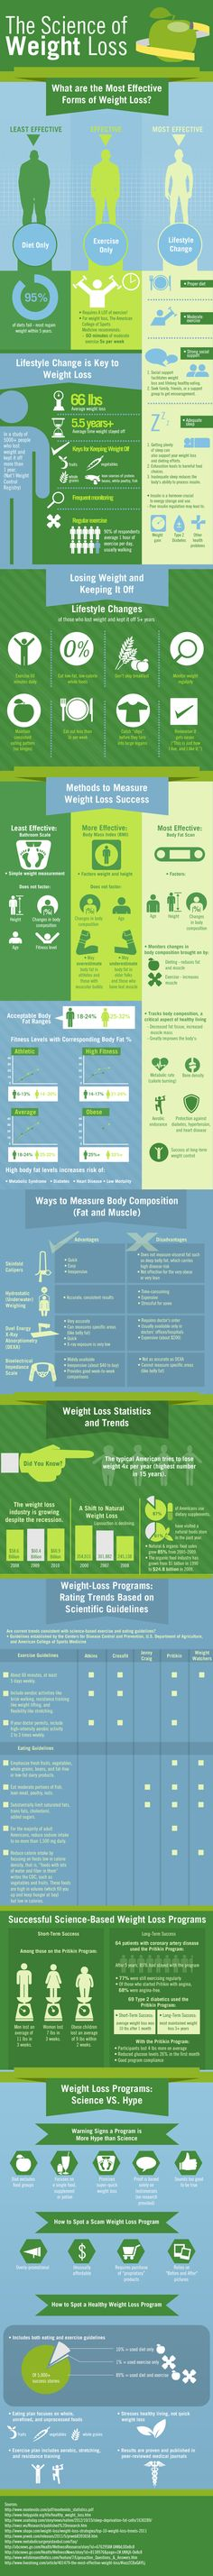 How to lose weight but gain curves picture 1